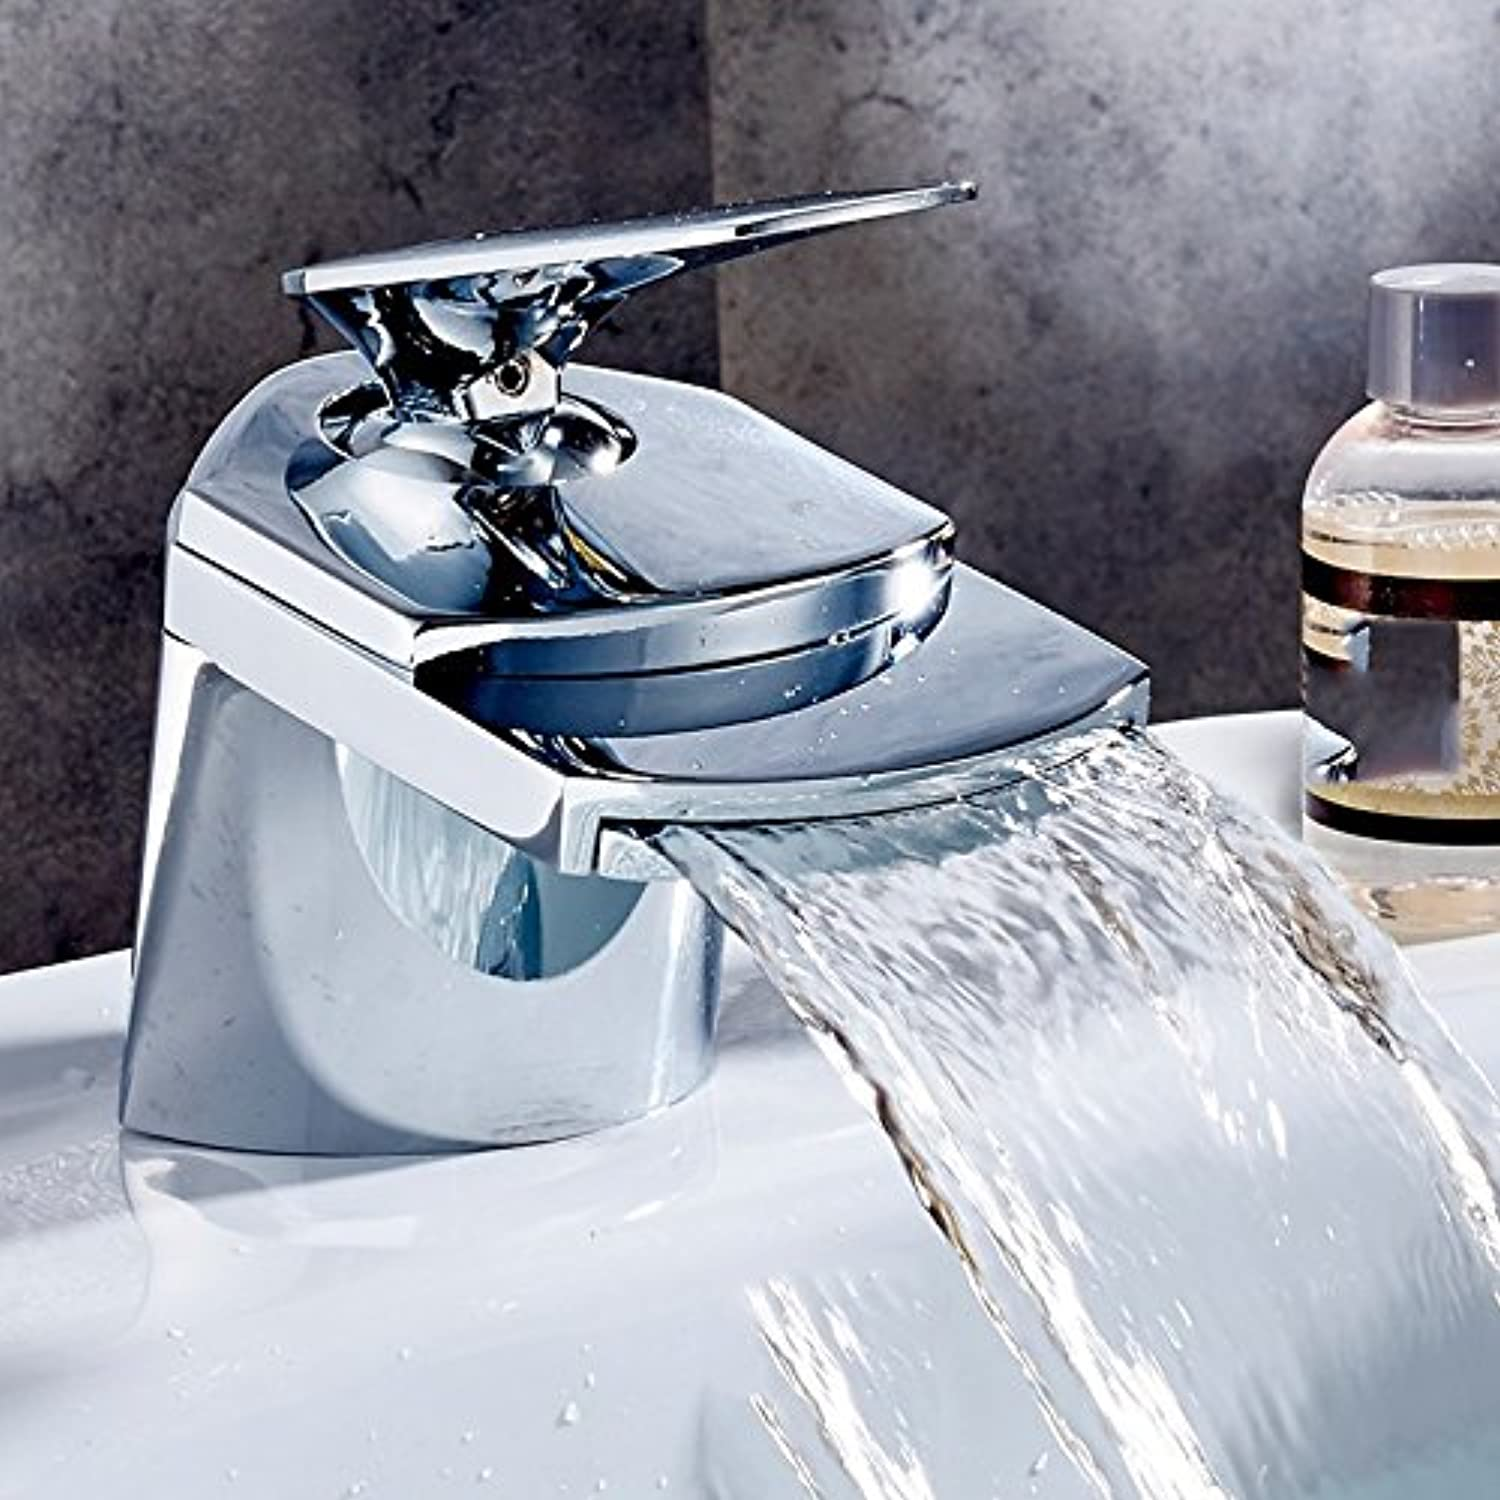 Hlluya Professional Sink Mixer Tap Kitchen Faucet The waterfall basin mixer single hole hot & cold water,